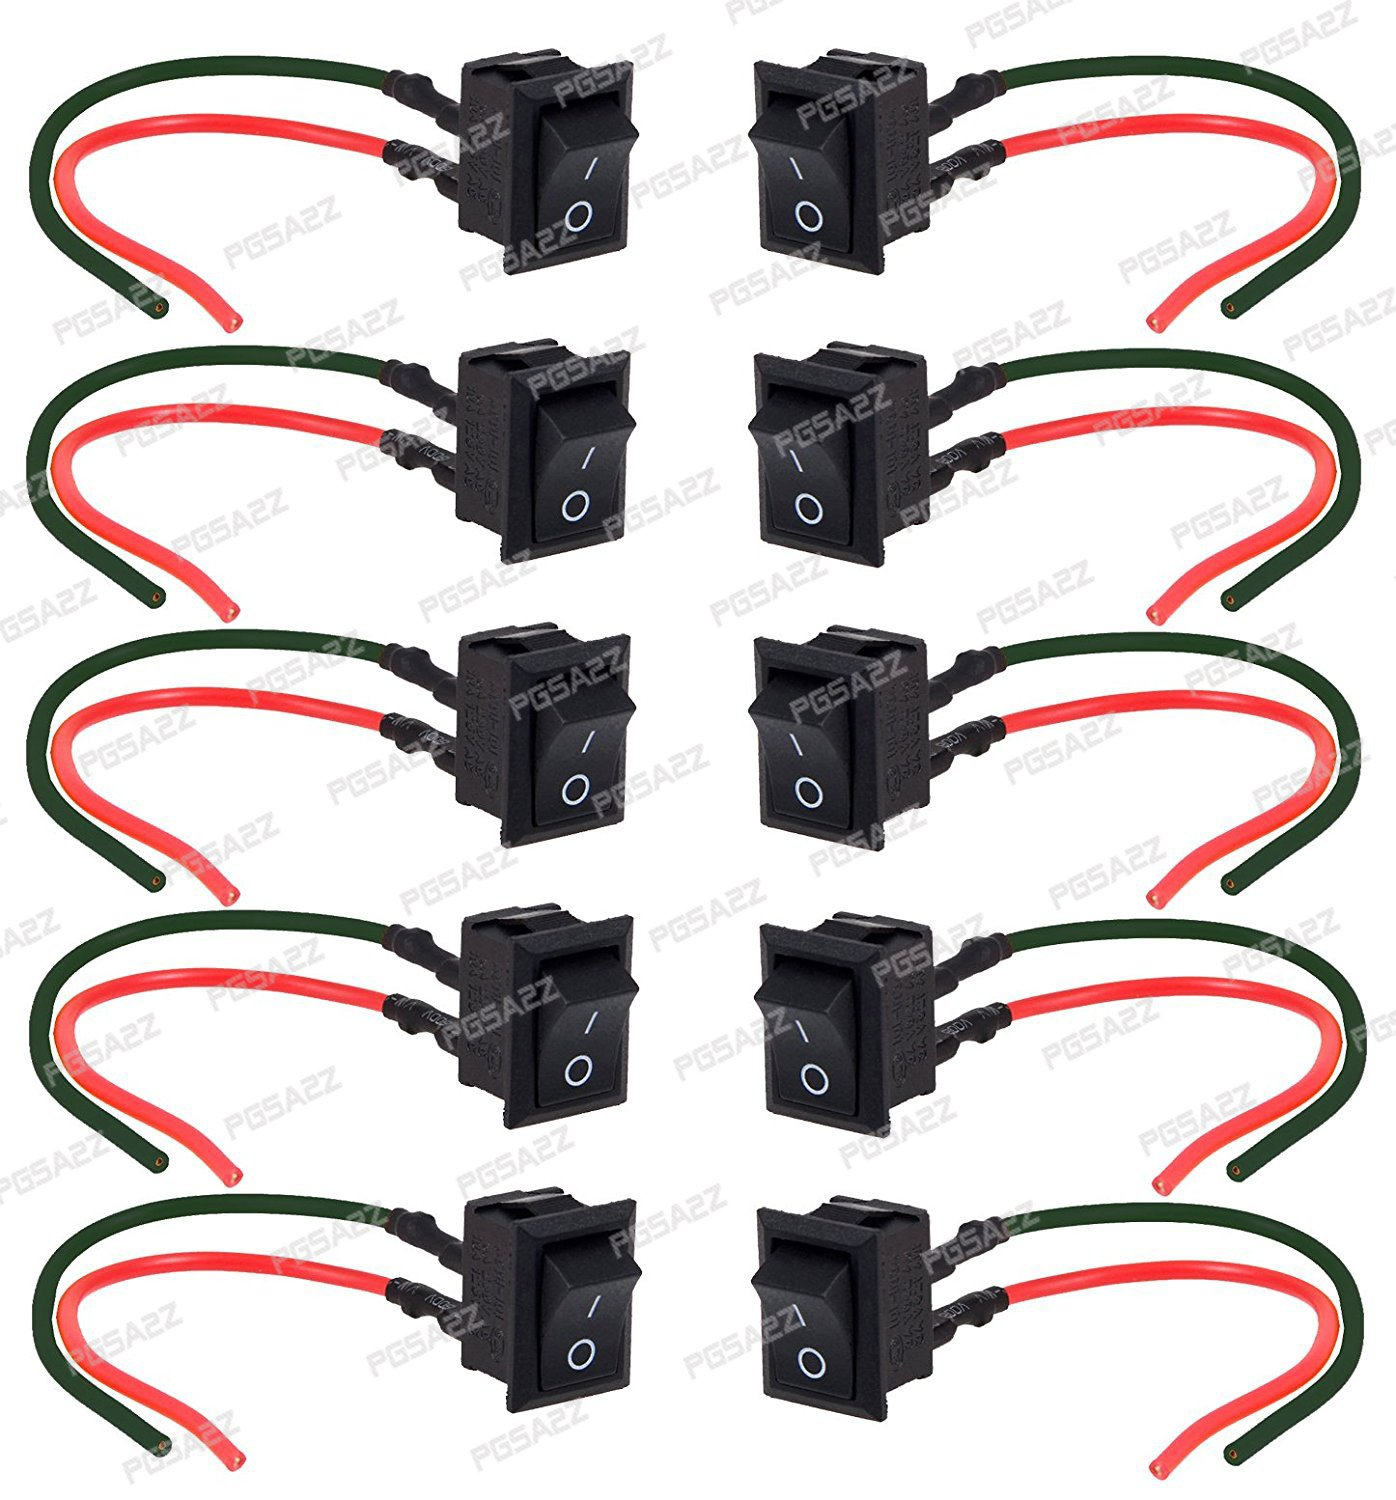 Pgsa2z 2 Pin On Off Spst Mini Rocker Switch With Attached Wires Switch Pack Of 10 Amazon In Computers Accessories